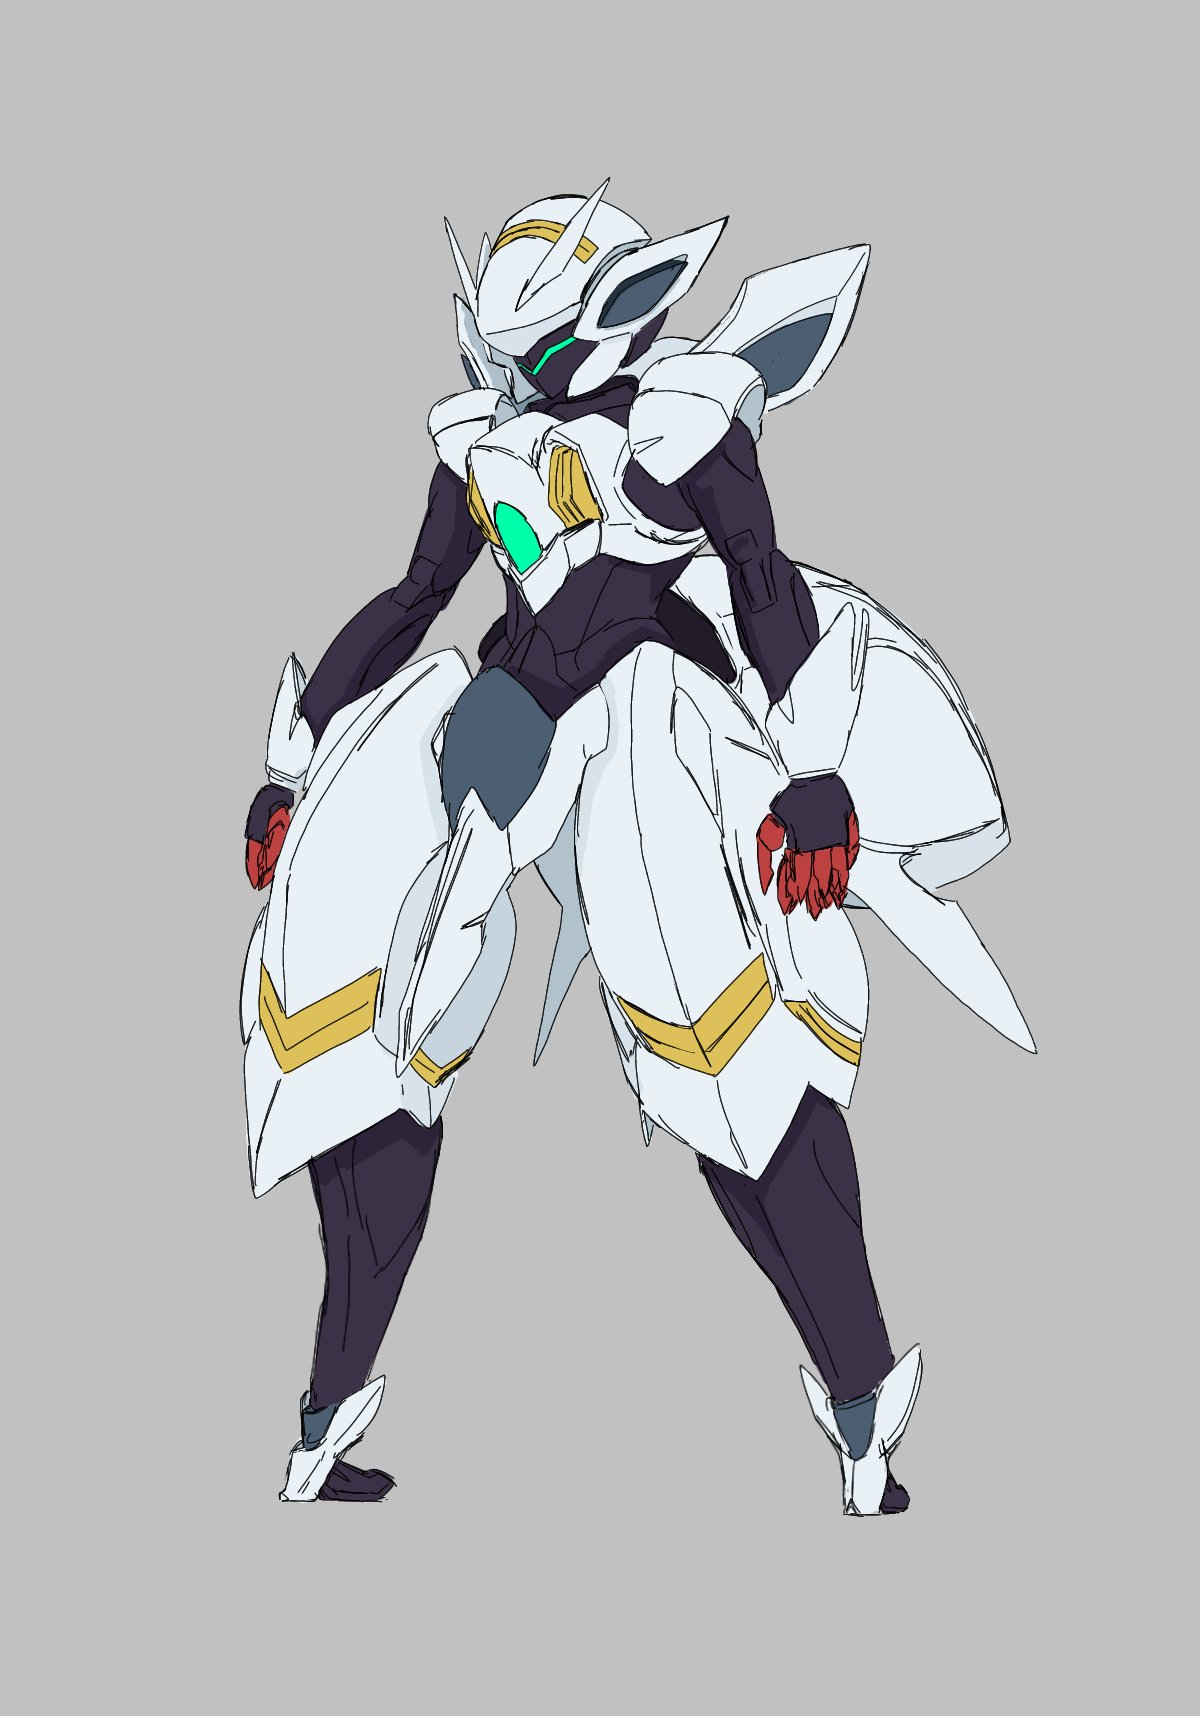 advance_of_zeta commentary_request dame_ningen_(paipaipaaipapai) grey_background gundam gundam_age highres looking_down mecha no_humans open_hands parody solo standing style_parody thick_thighs thighs tr-6_woundwort visor